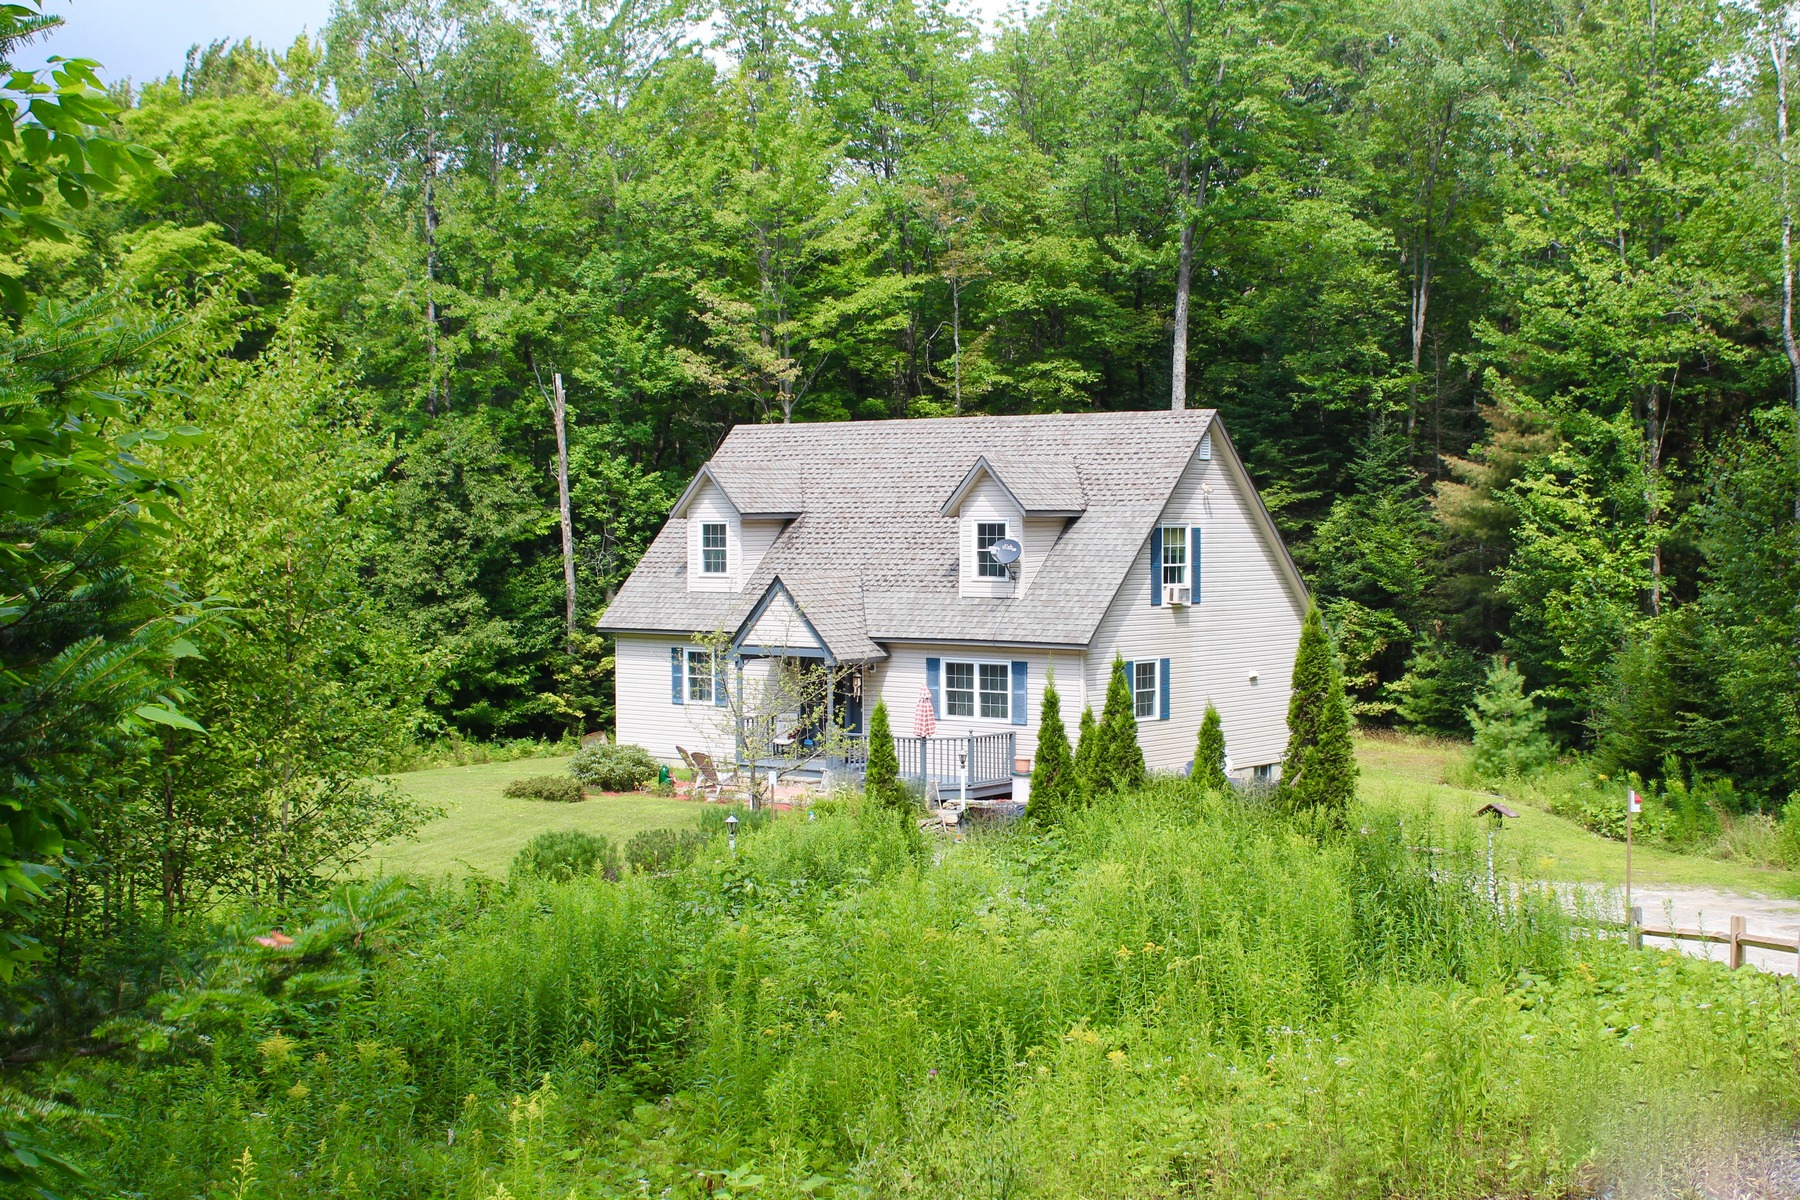 Casa Unifamiliar por un Venta en 245 Teer Road, Mount Holly 245 Teer Rd Mount Holly, Vermont, 05730 Estados Unidos